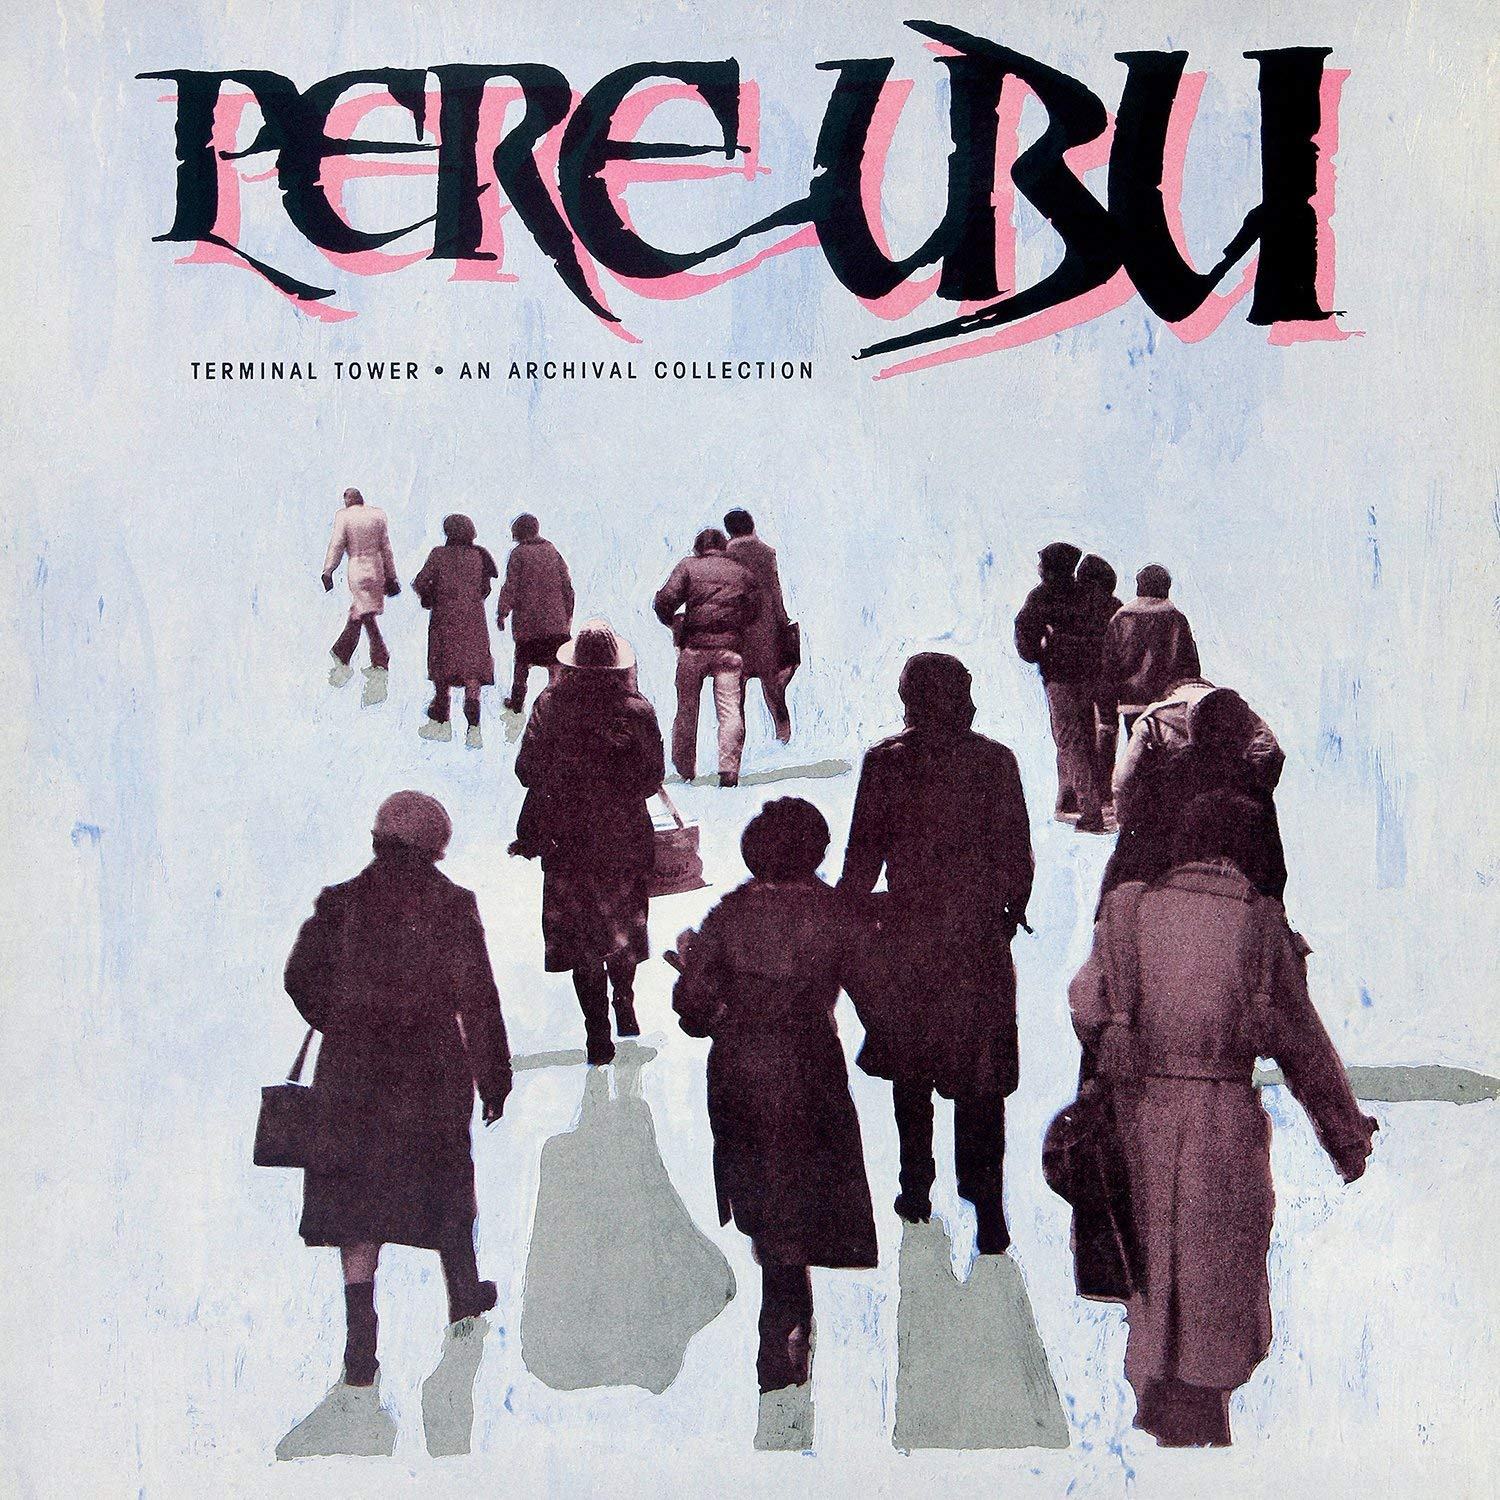 Pere Ubu - Terminal Tower [Clear LP]